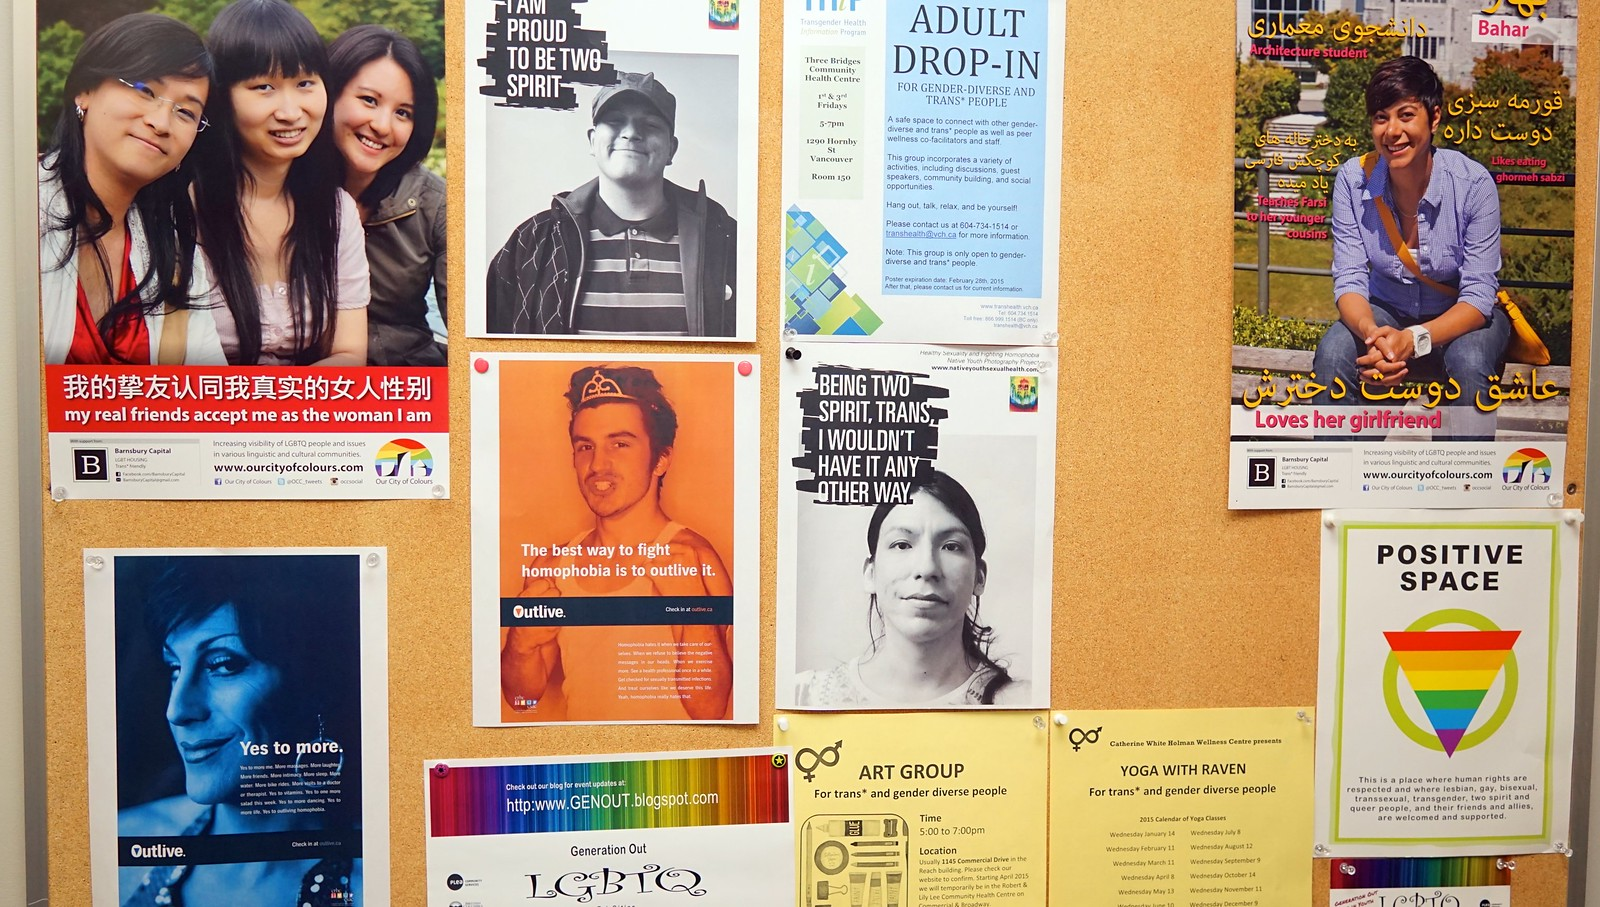 Photo Friday: Transgender Health Information Program, Vancouver Coastal Health Authority, Vancouver, BC